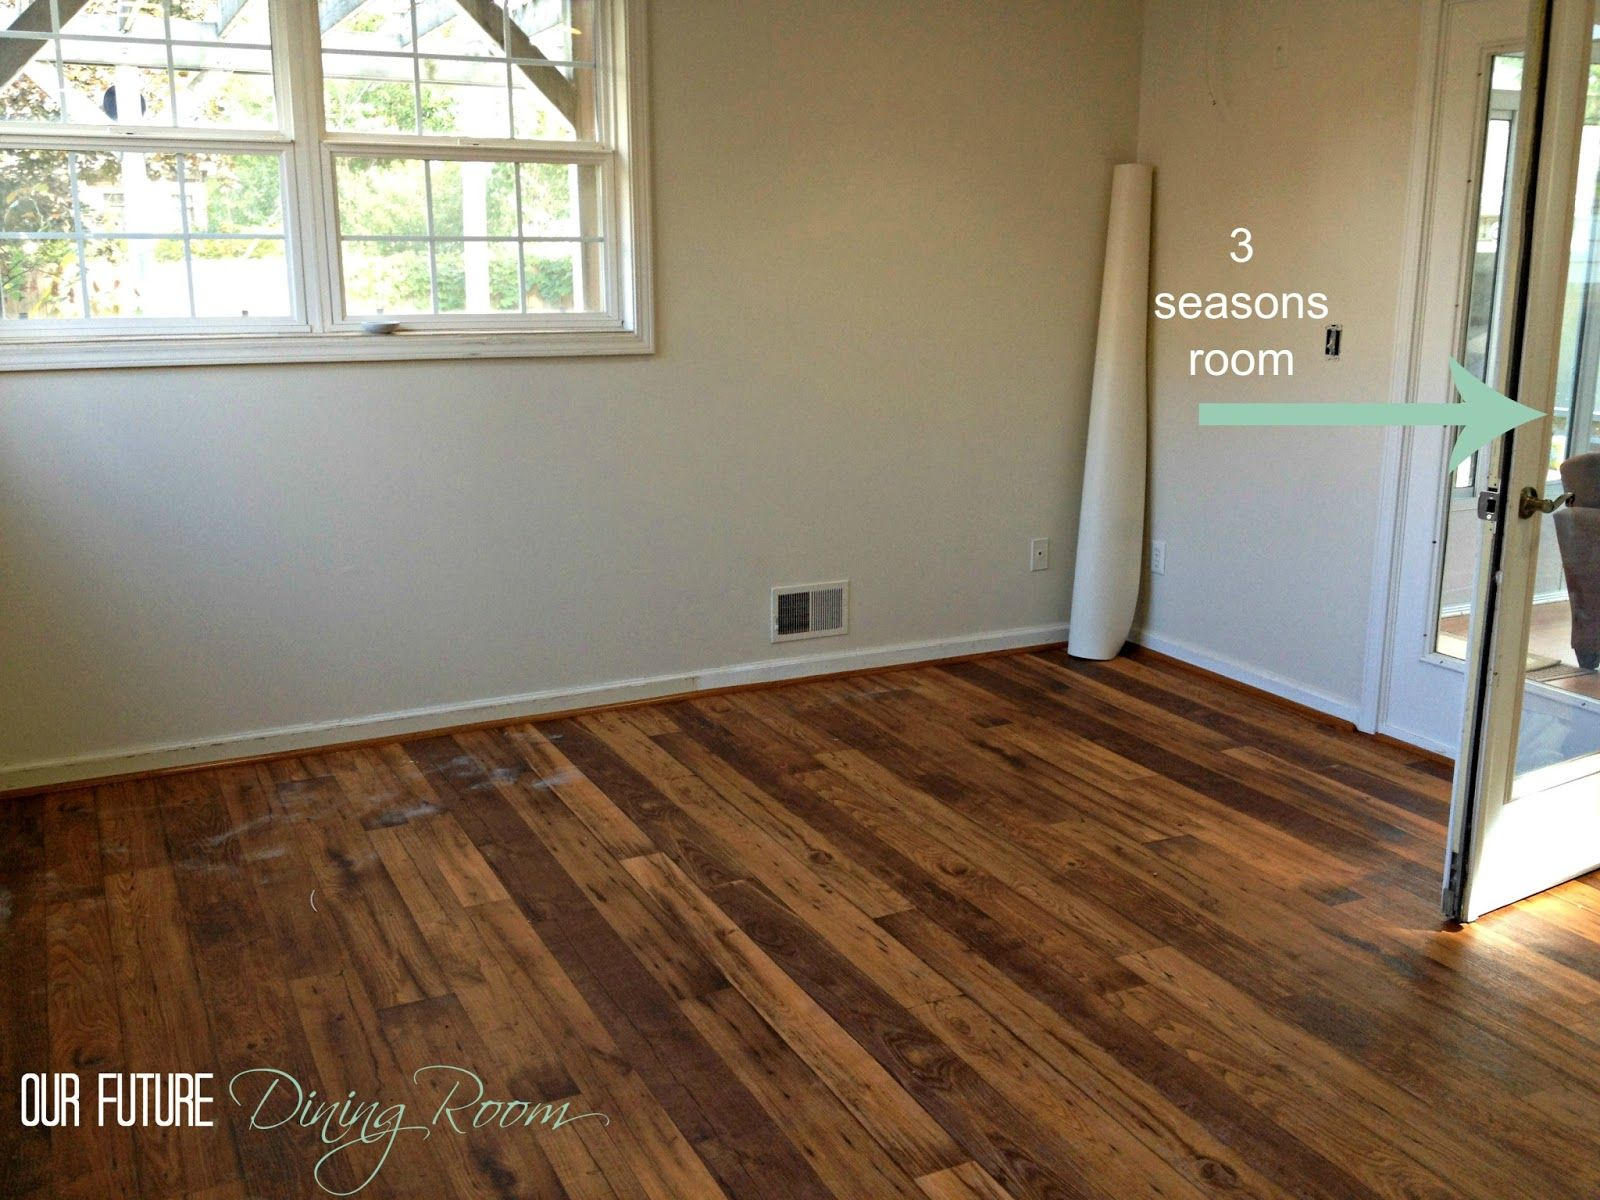 kitchen flooring kitchen laminate flooring linoleum wood flooring faux hardwood we went with a textured vinyl flooring